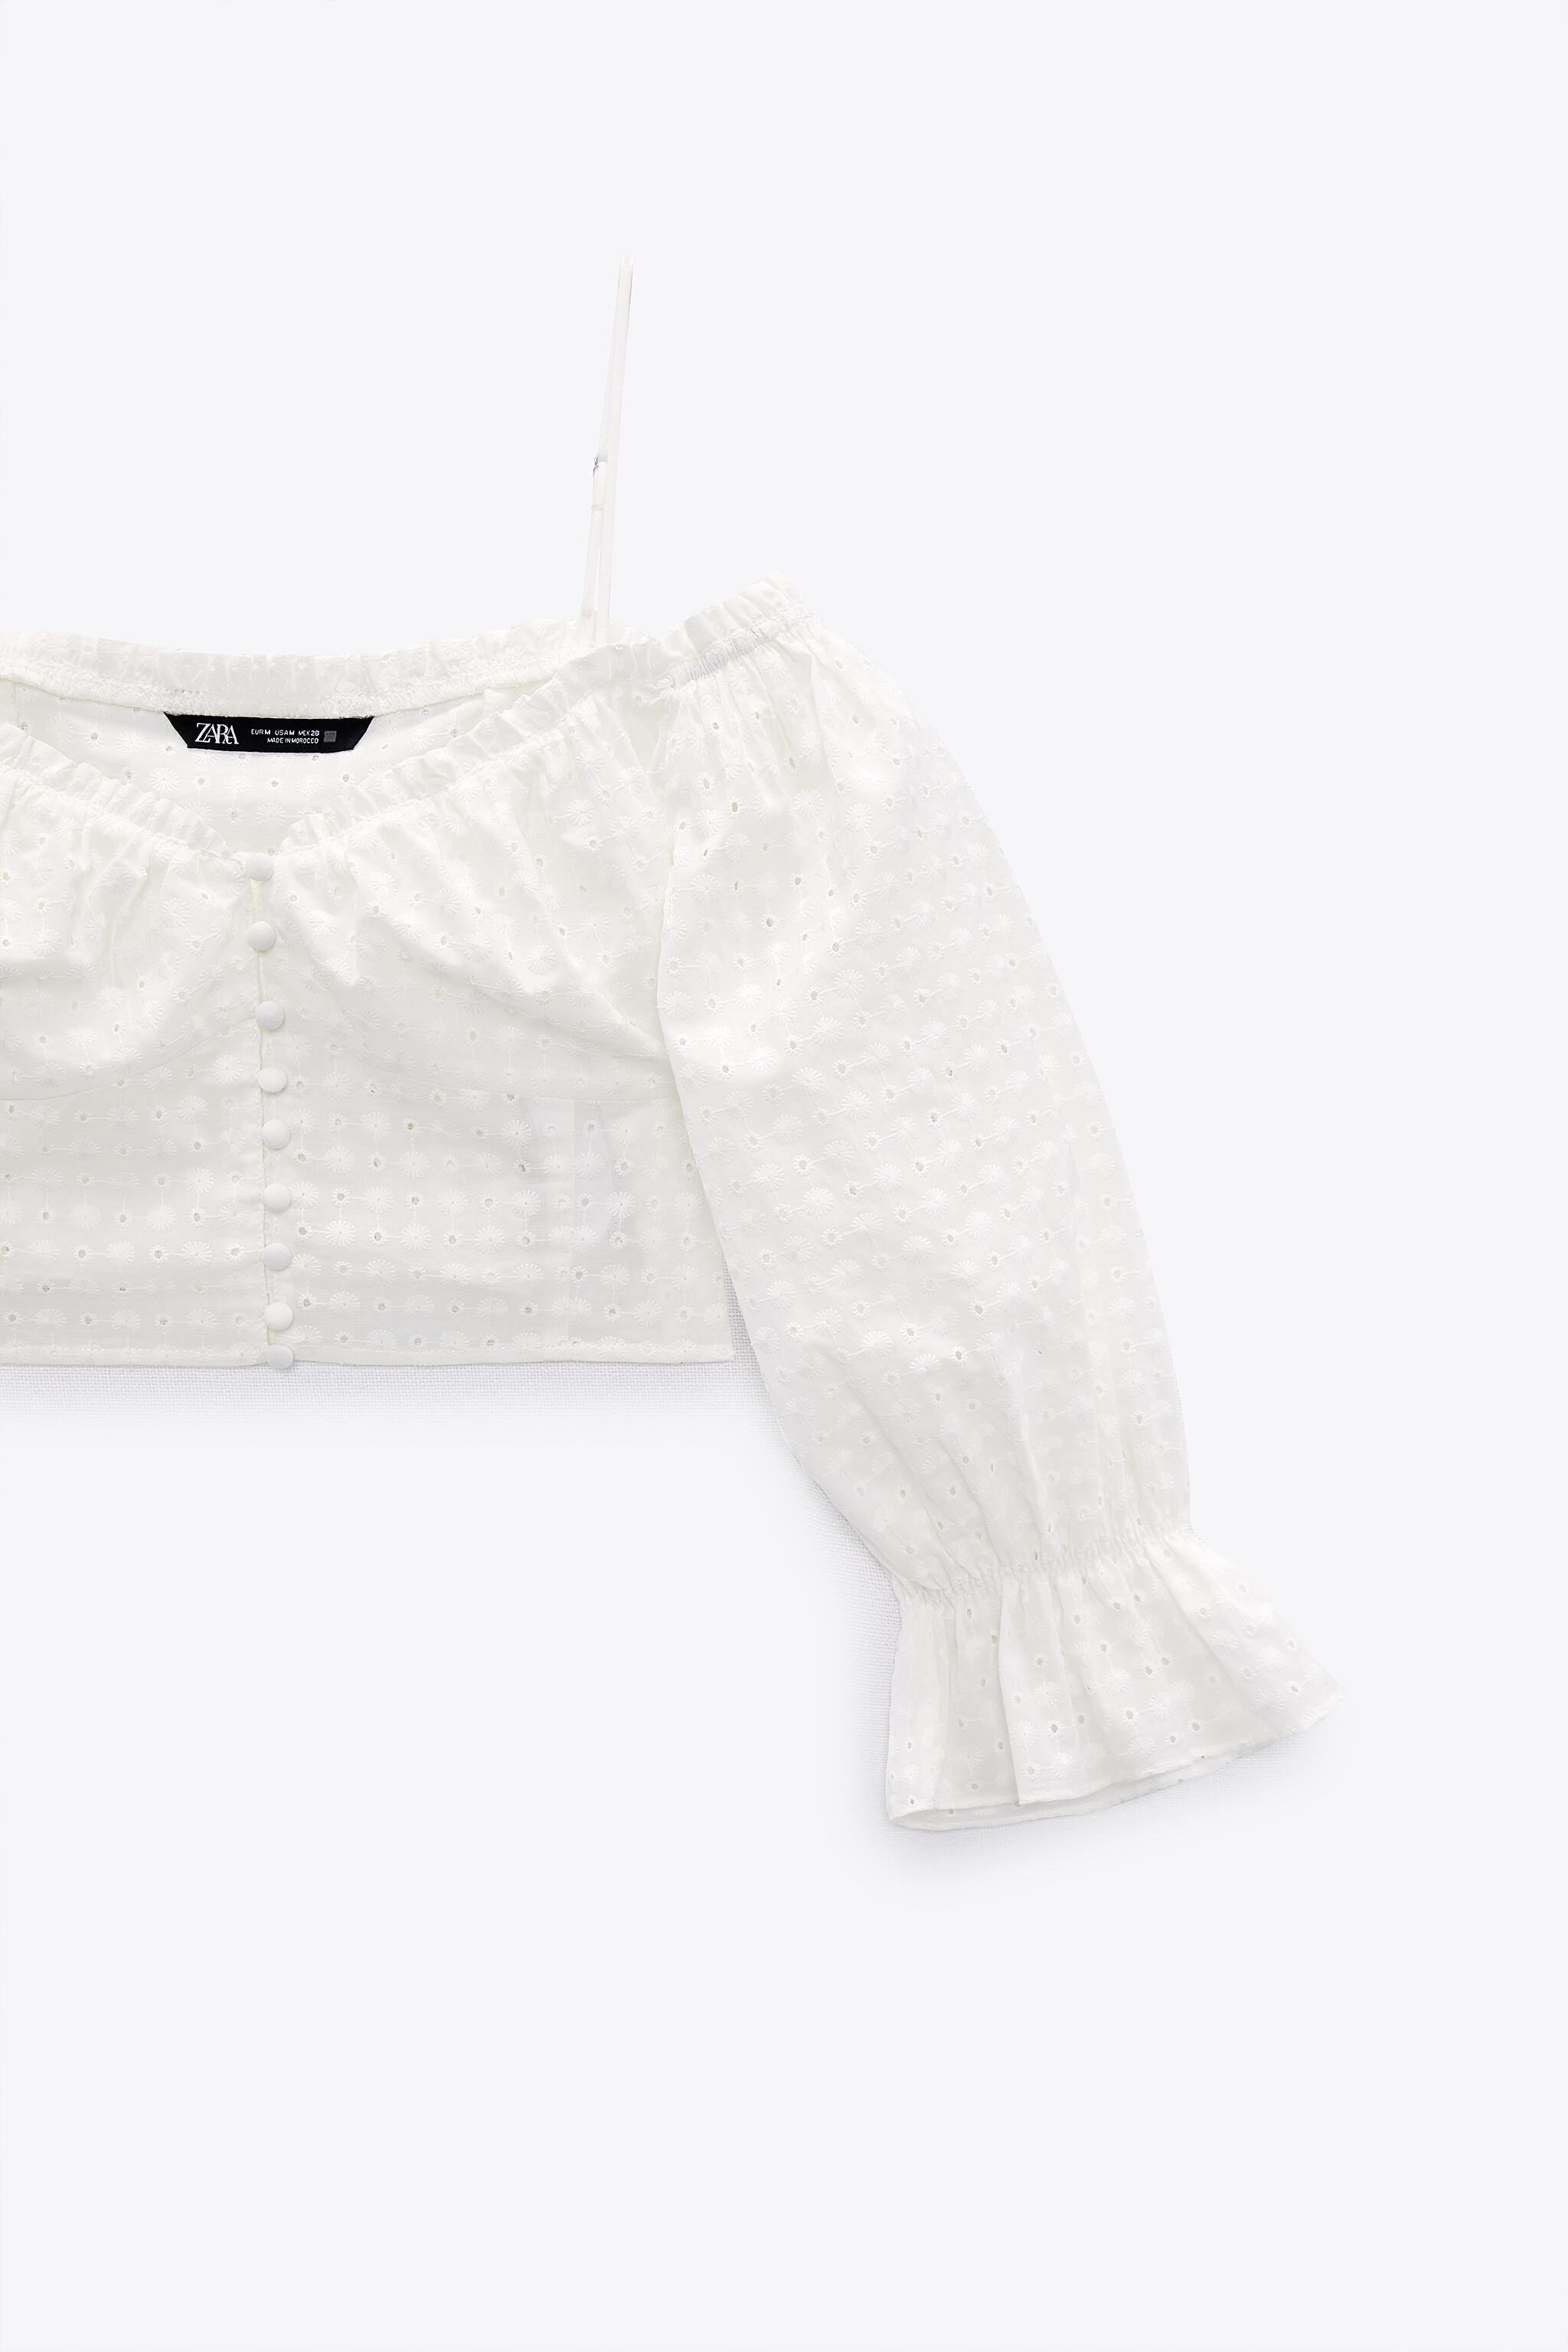 EMBROIDERED EYELET CROP TOP 9